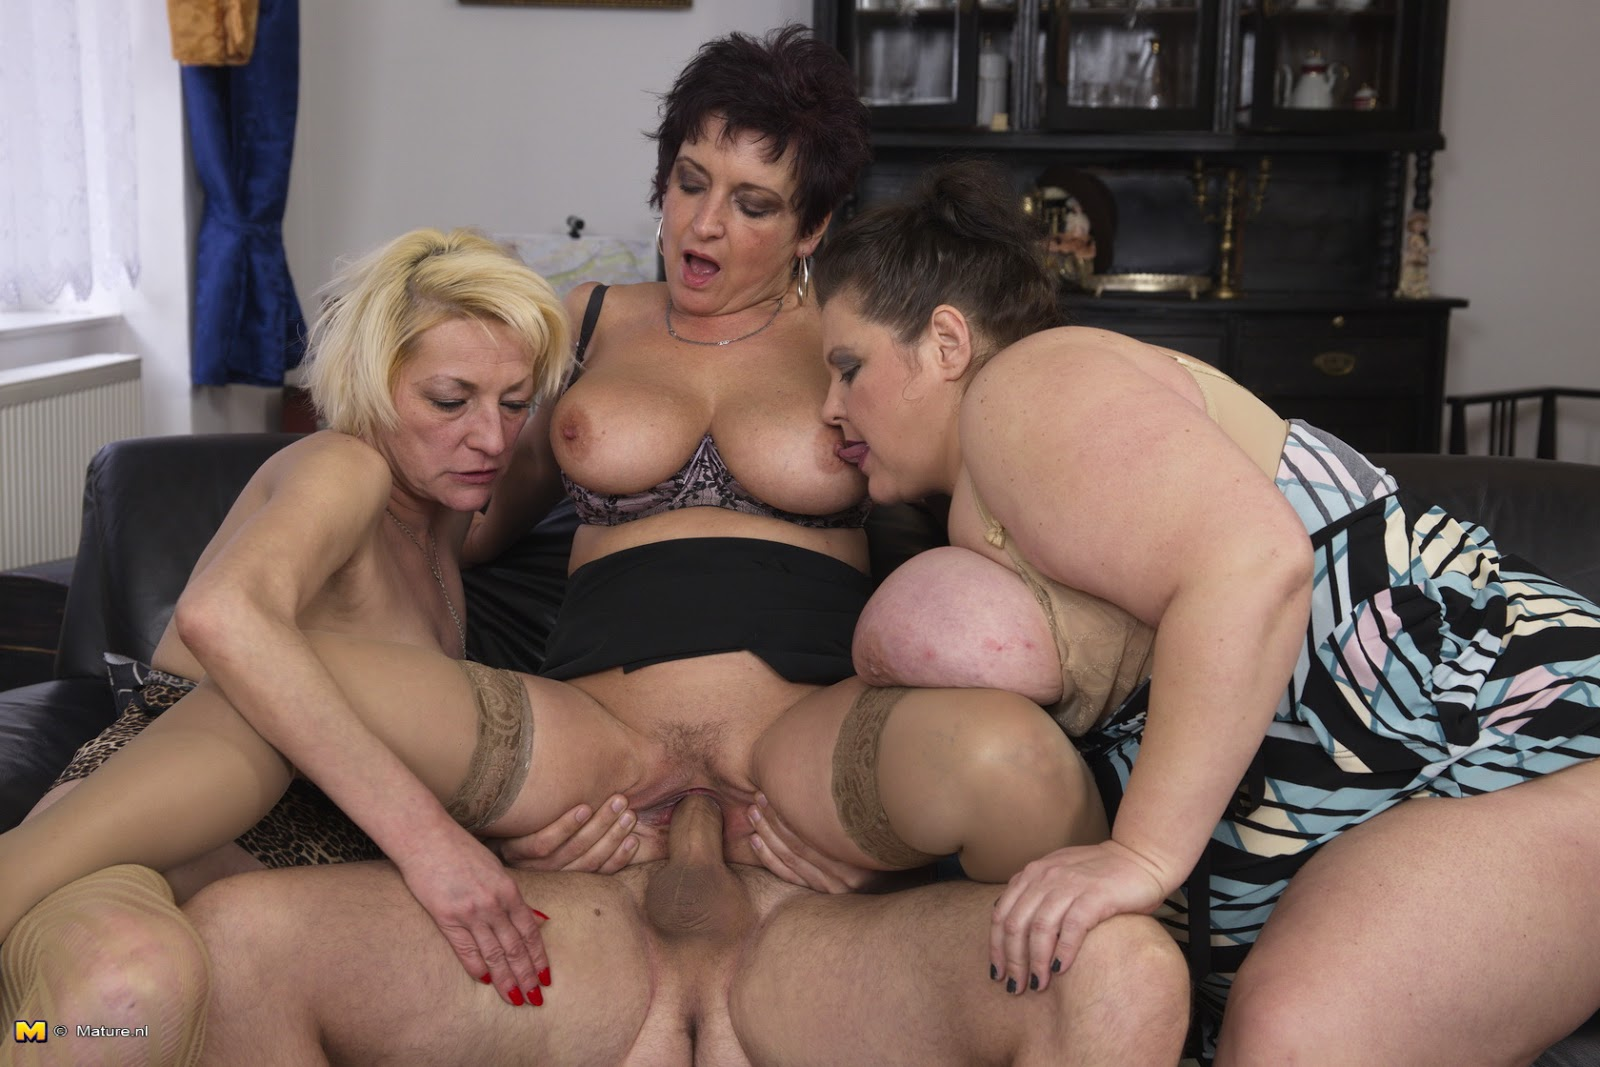 Group Sex With Mature Women